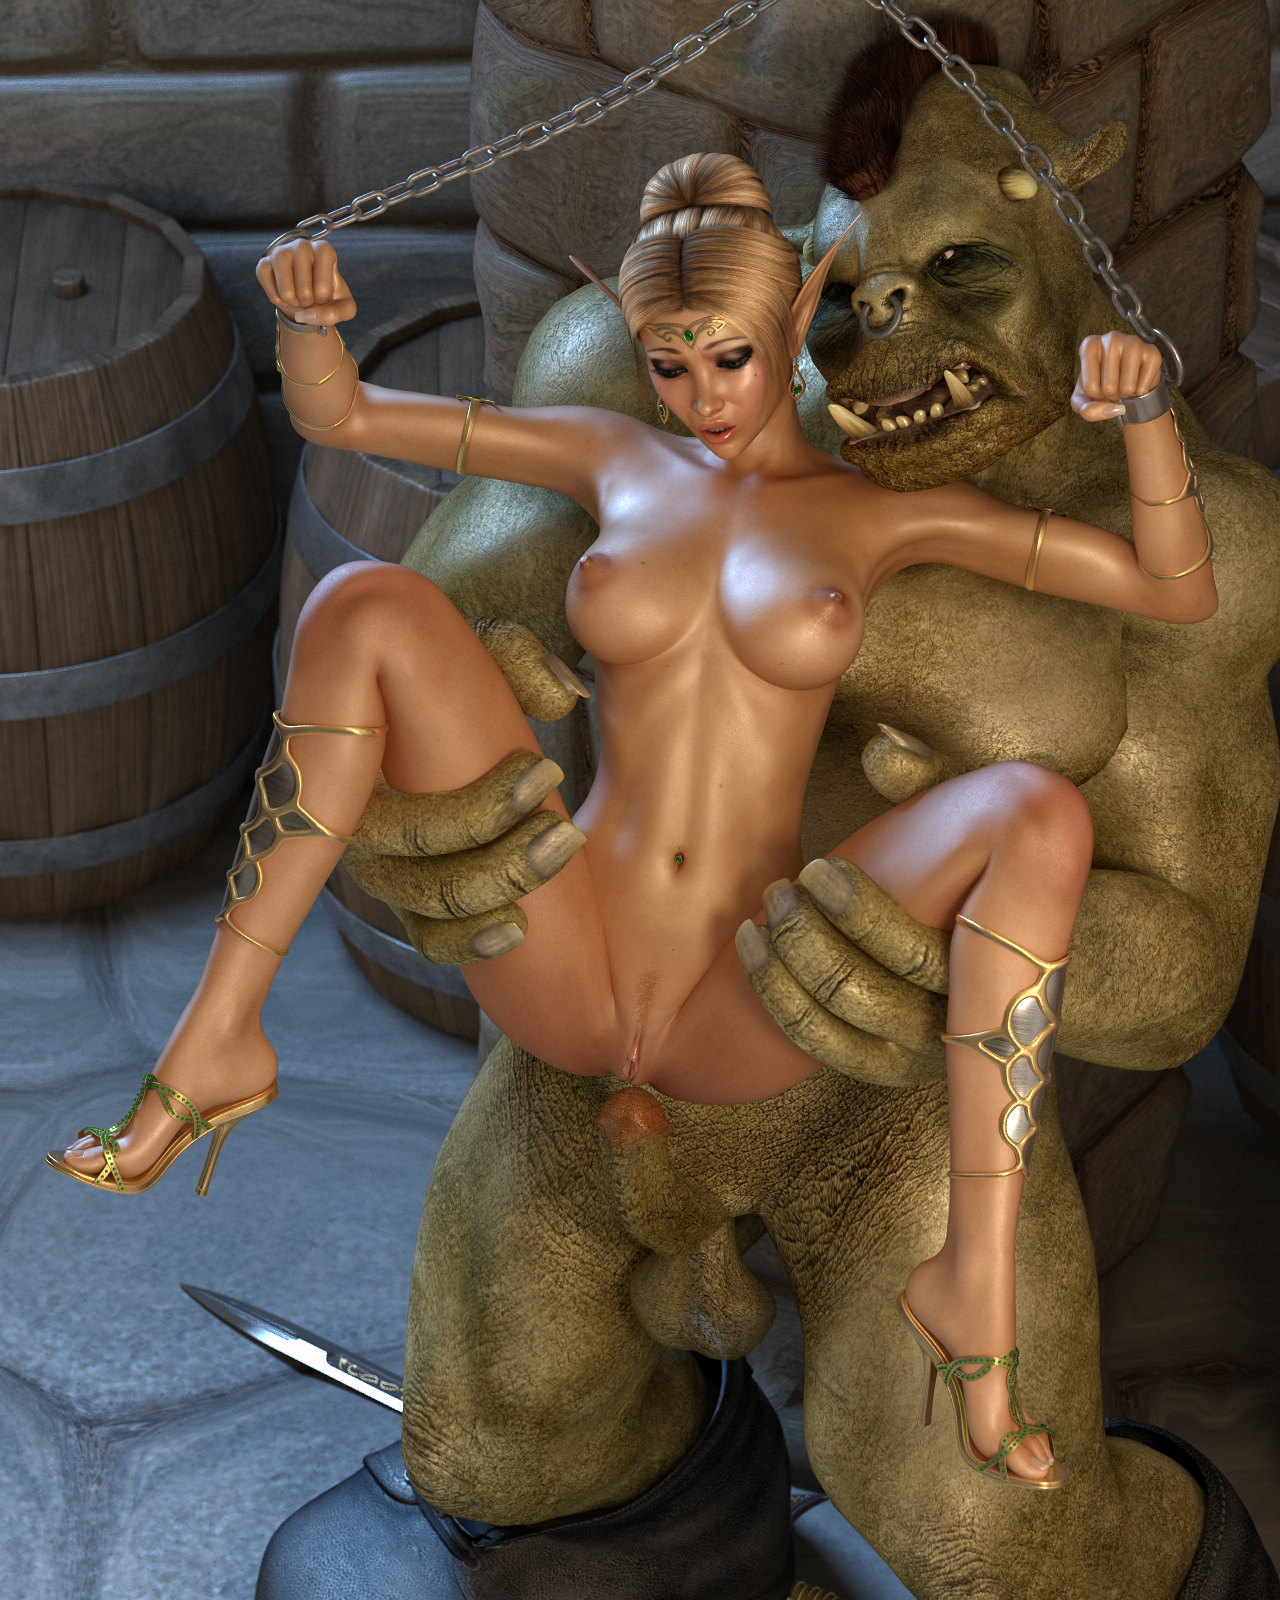 Three monsters abuse elf girl porn image